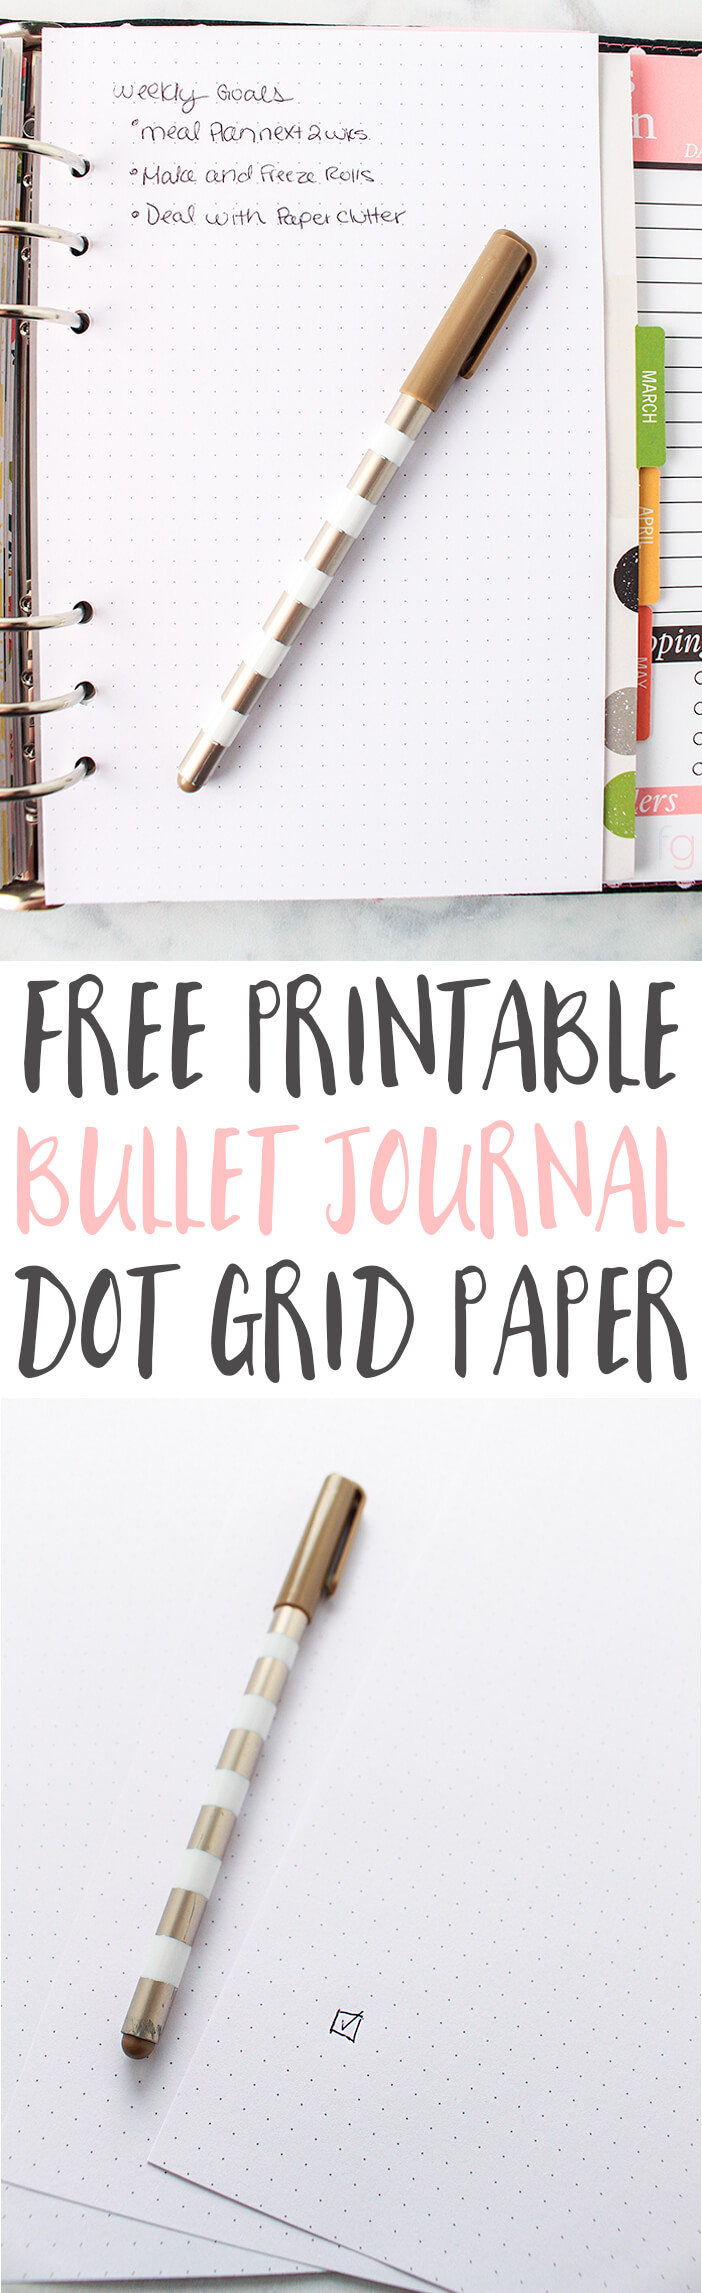 graphic regarding Free Printable Dot Grid Paper named Dot Grid Paper Printable - Absolutely free Bullet Magazine Web page